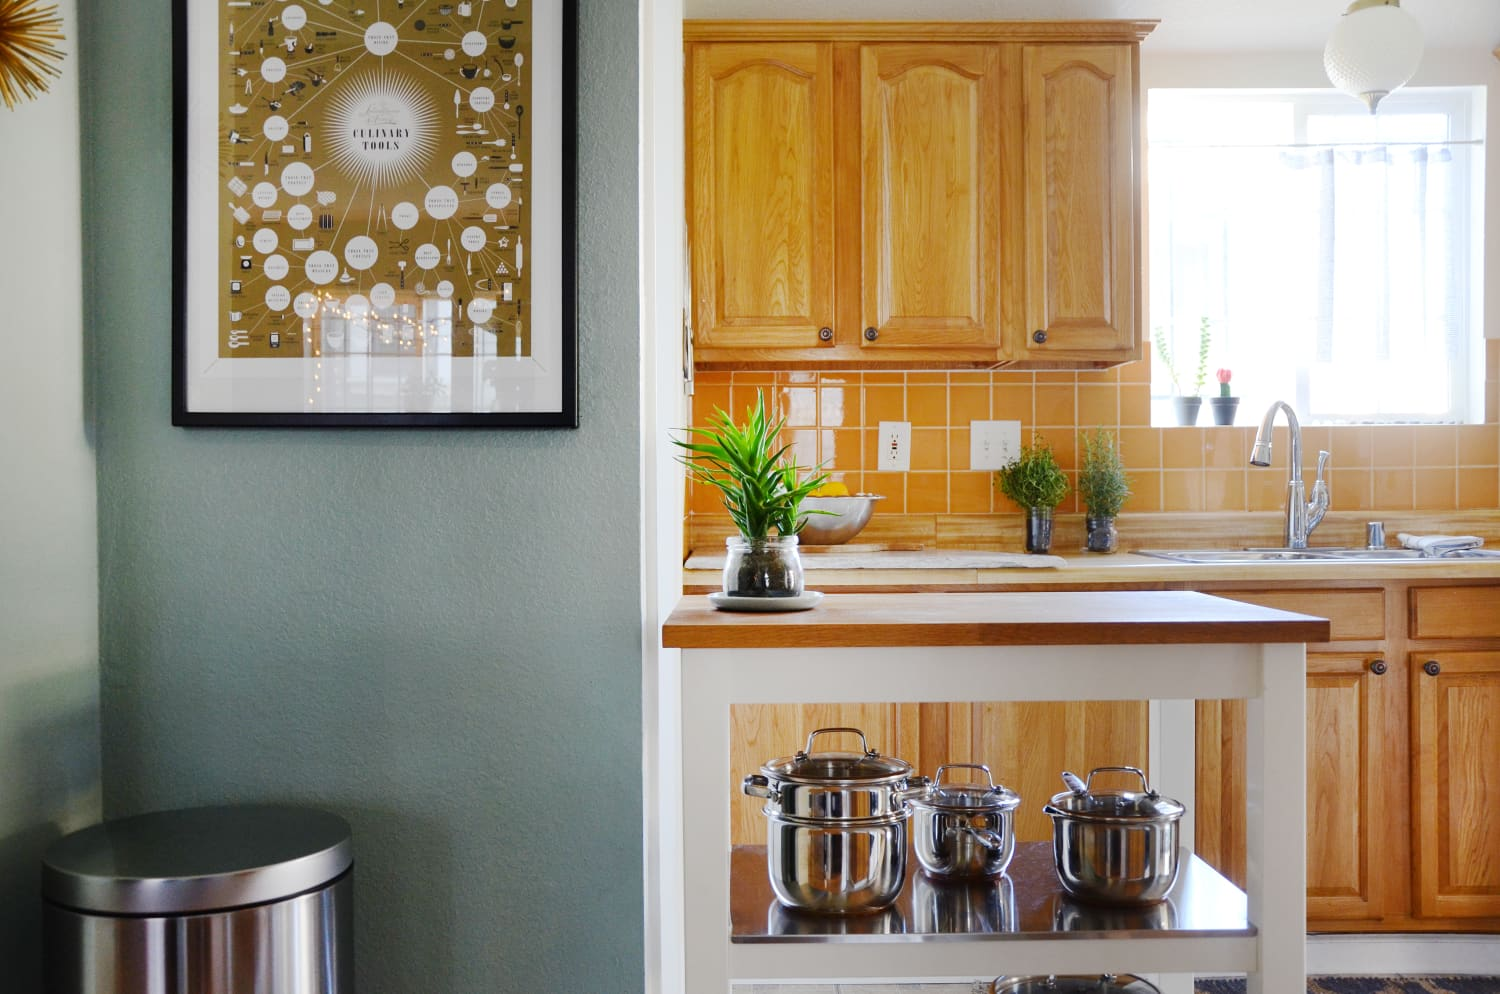 9 Little Ways to Upgrade Your Kitchen Without Renovating